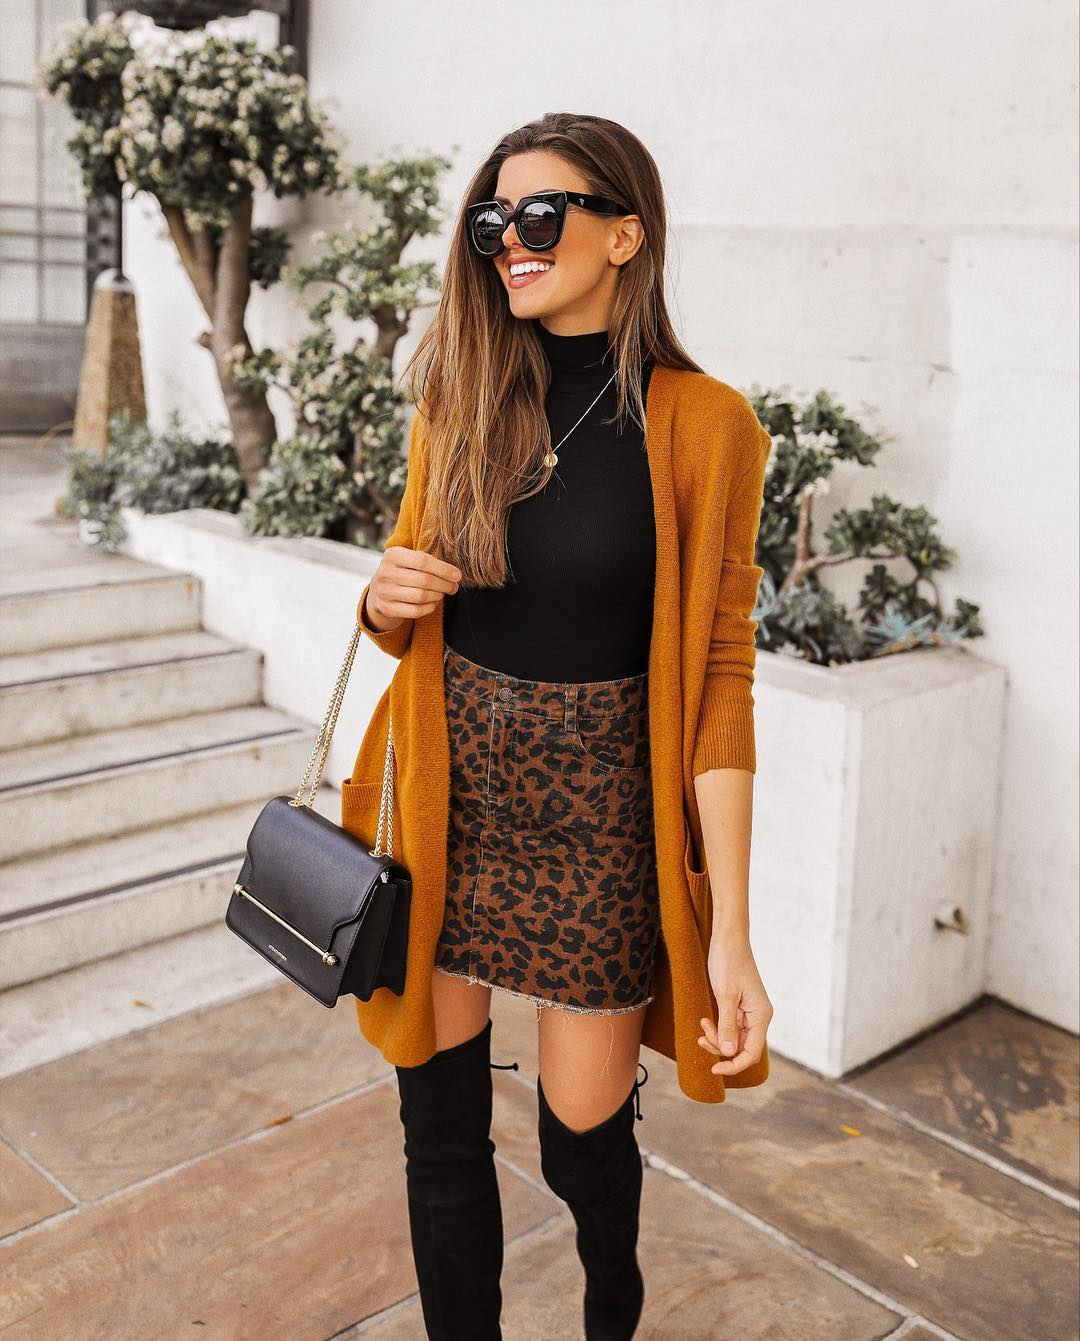 How to wear a leopard print skirt and mustard cardigan this fall 2021